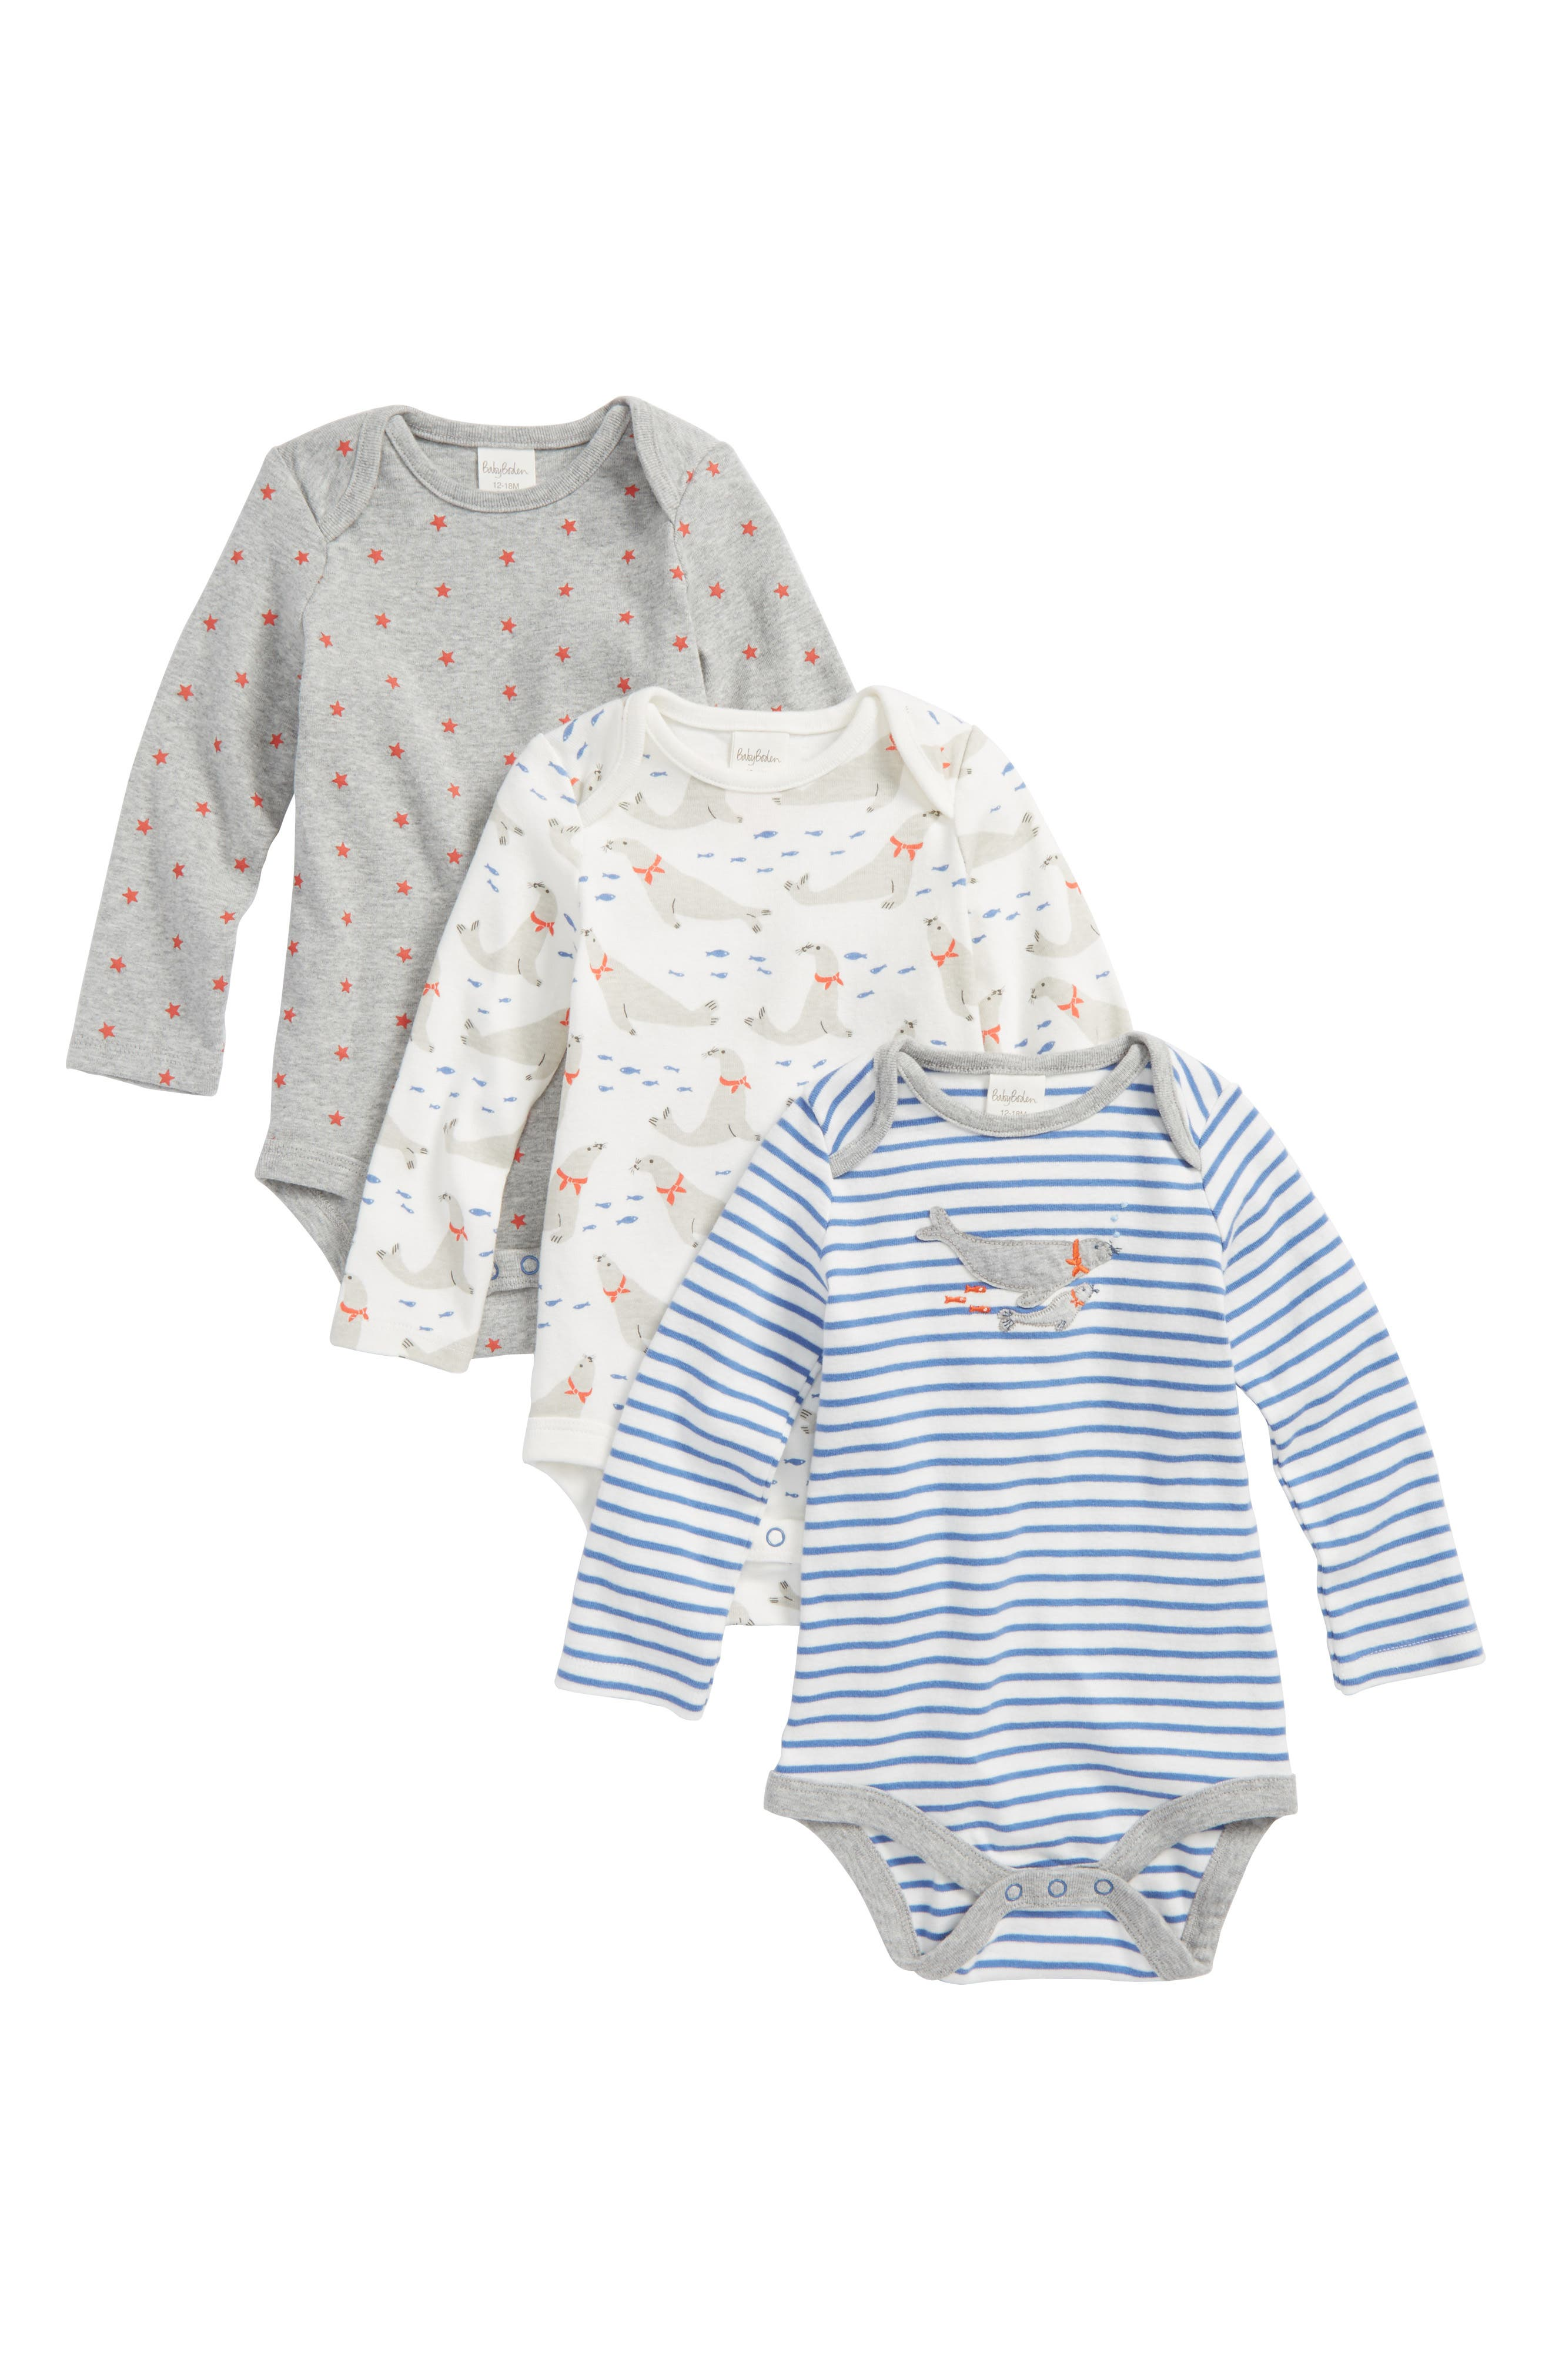 Alternate Image 1 Selected - Mini Boden 3-Pack Seals Cotton Bodysuits (Baby Boys)